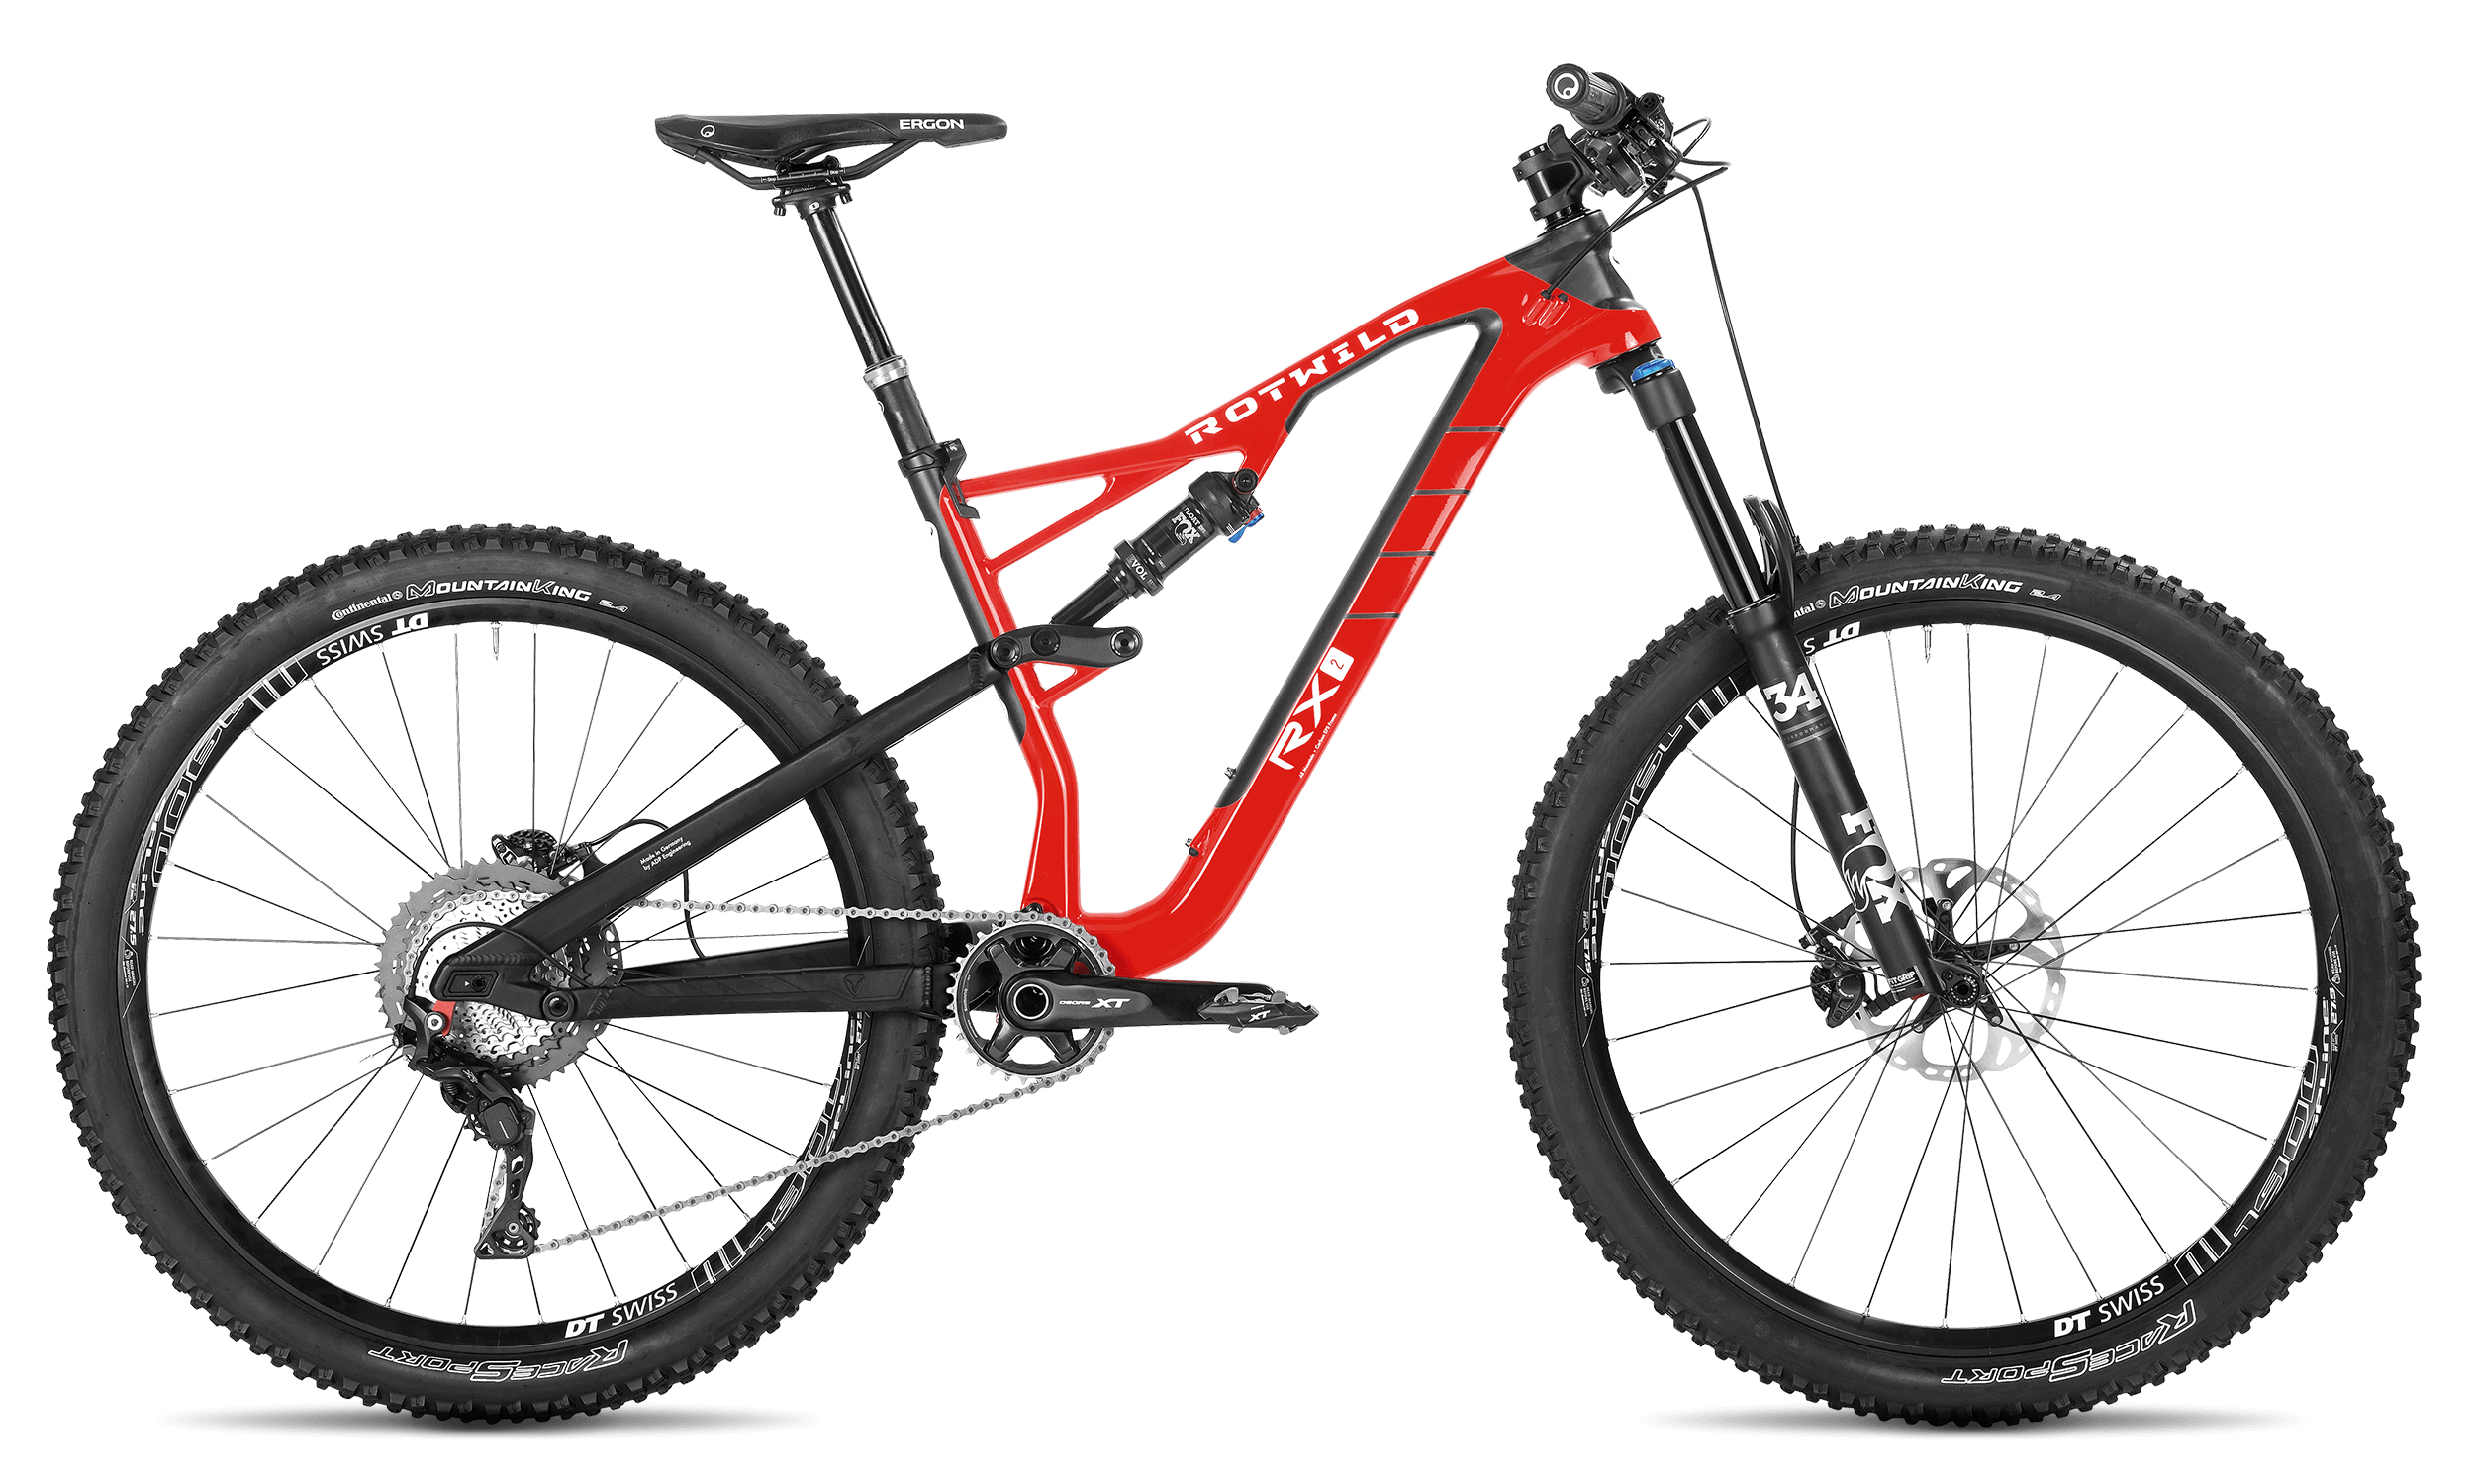 R.X2 TRAIL (27.5) PRO - Red - S - R.X2 TRAIL (27.5) PRO - Red - S